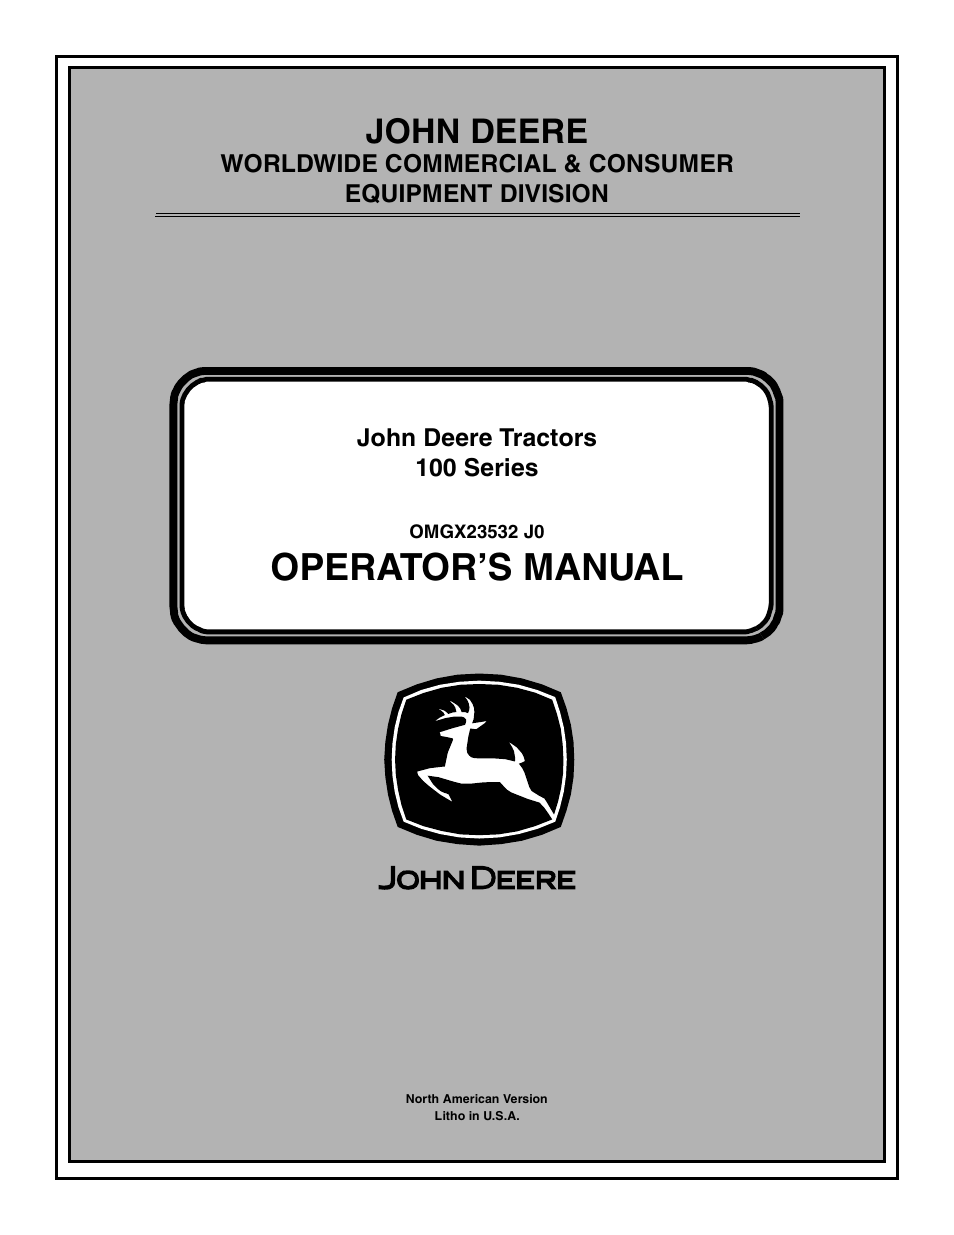 john deere tractor 100 series omg x23532 j0 user manual 56 pages rh manualsdir com john deere 60 tractor operators manual john deere 317 lawn tractor operator's manual